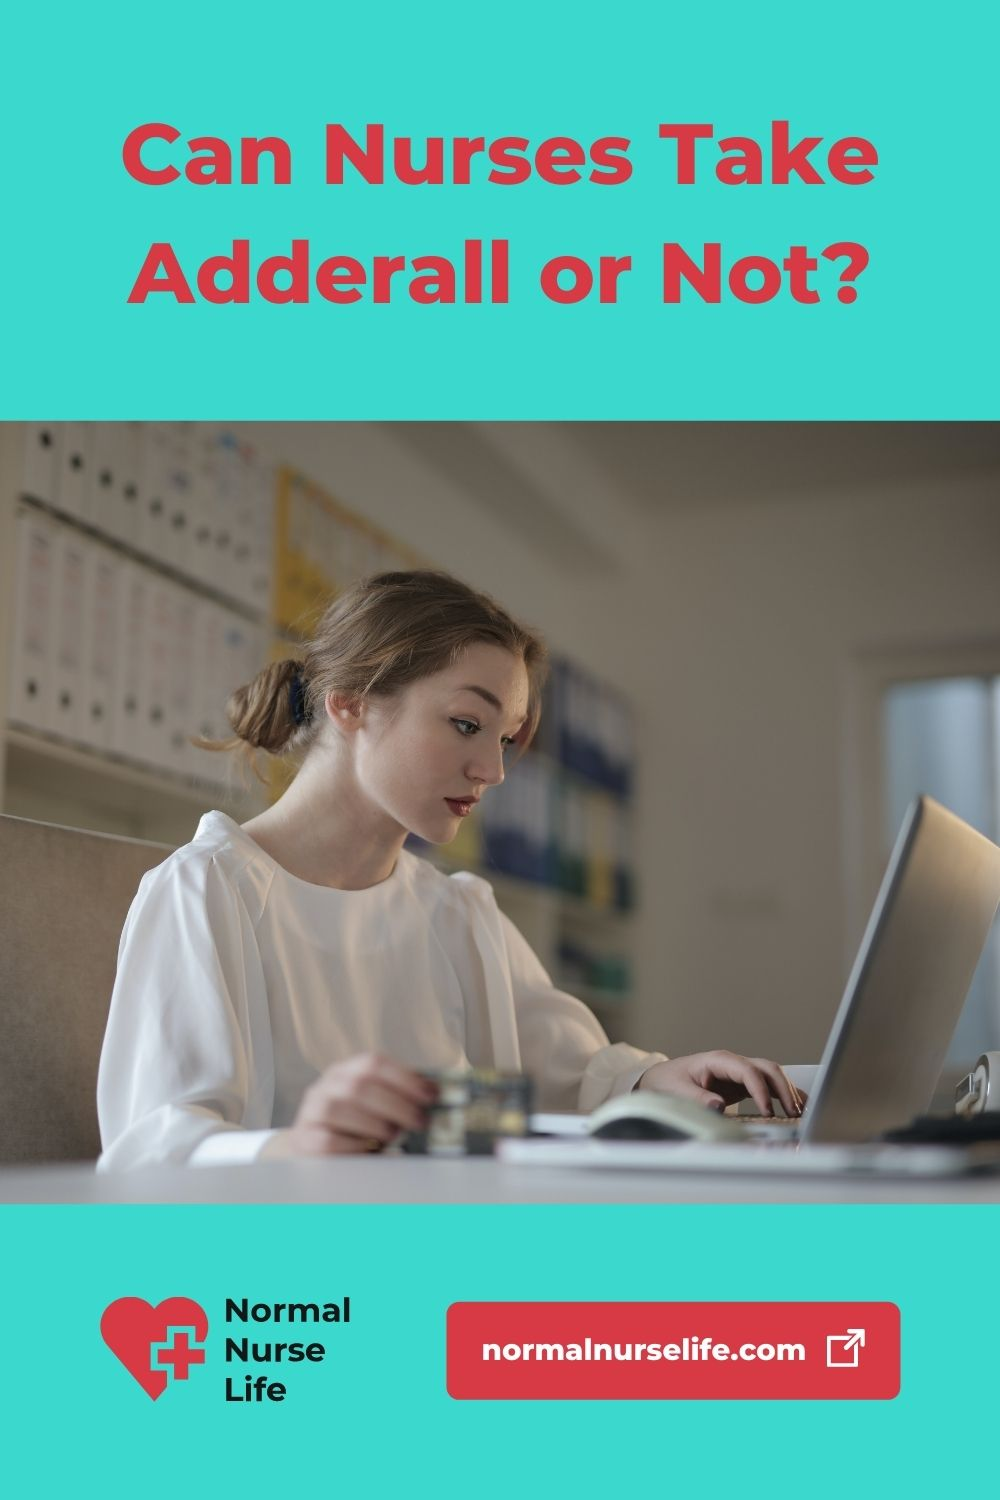 Can nurses take Adderall if prescribed